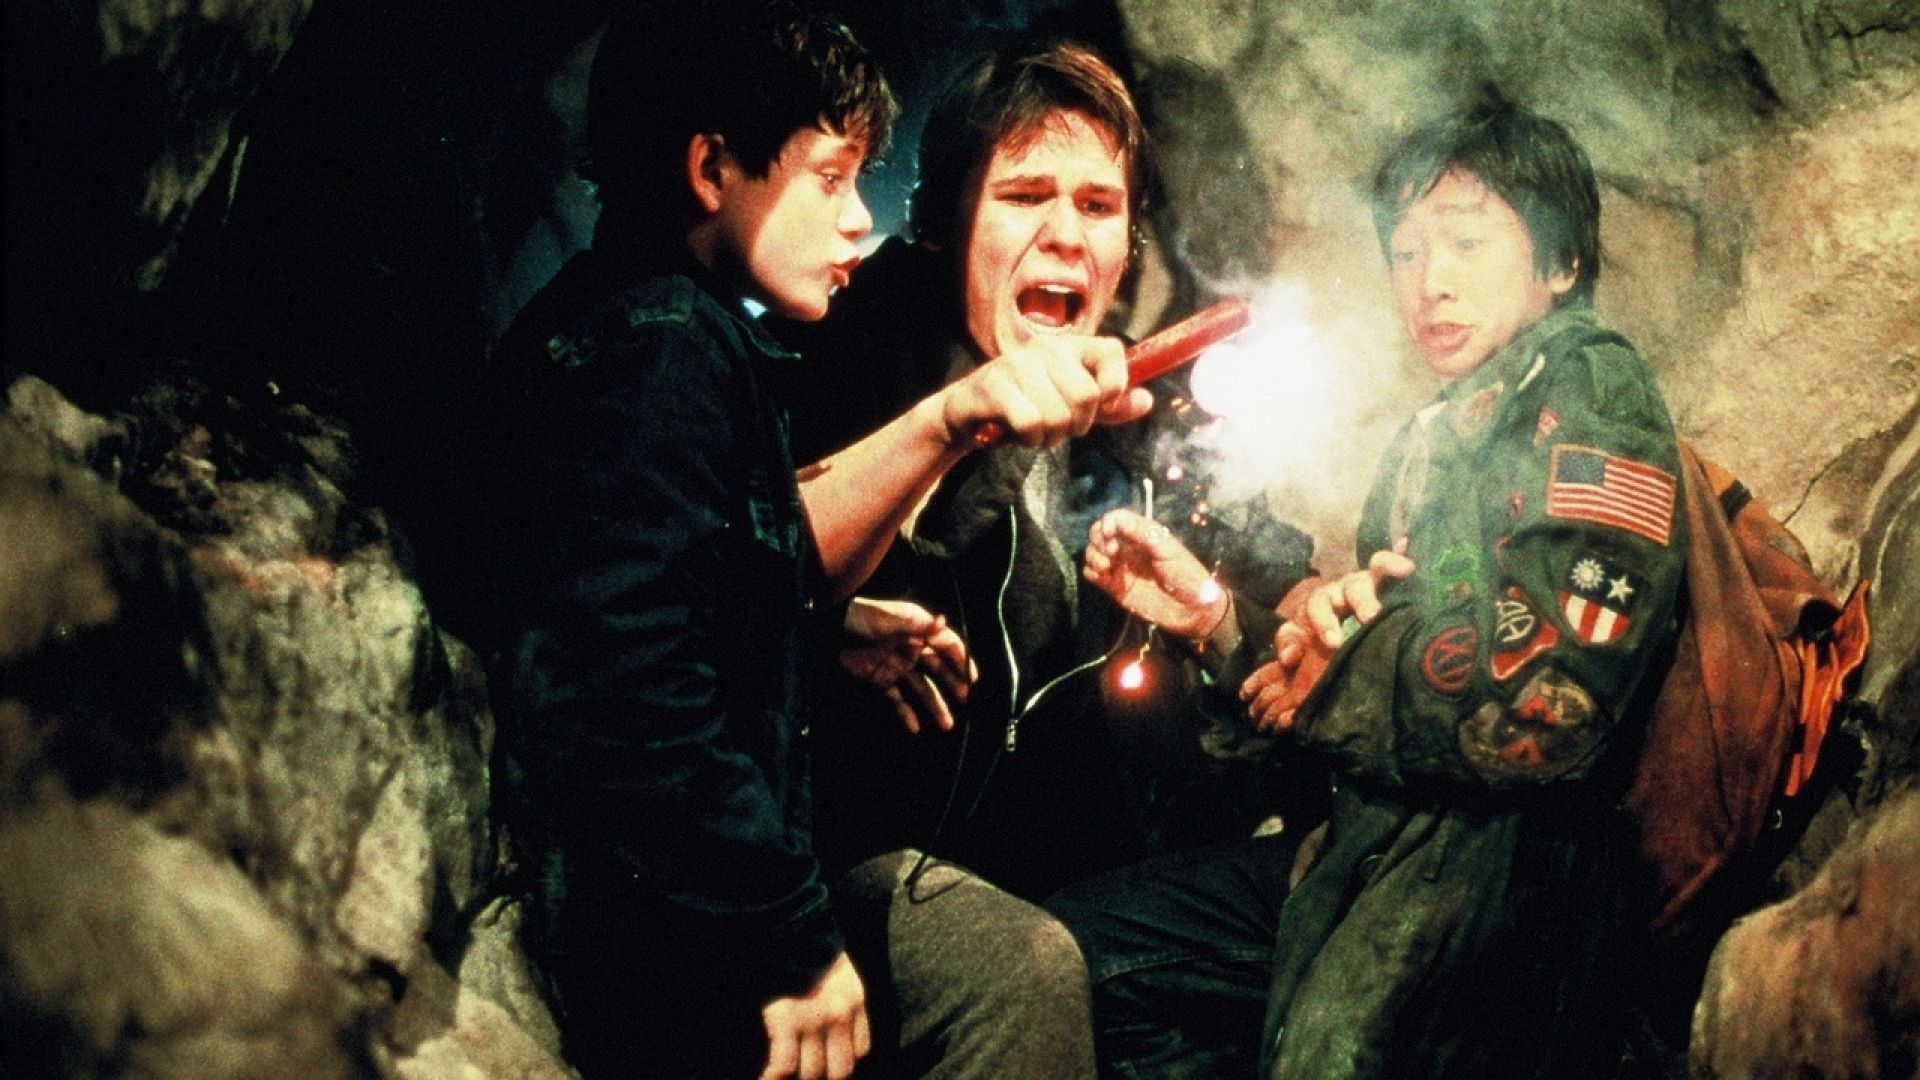 union films review the goonies